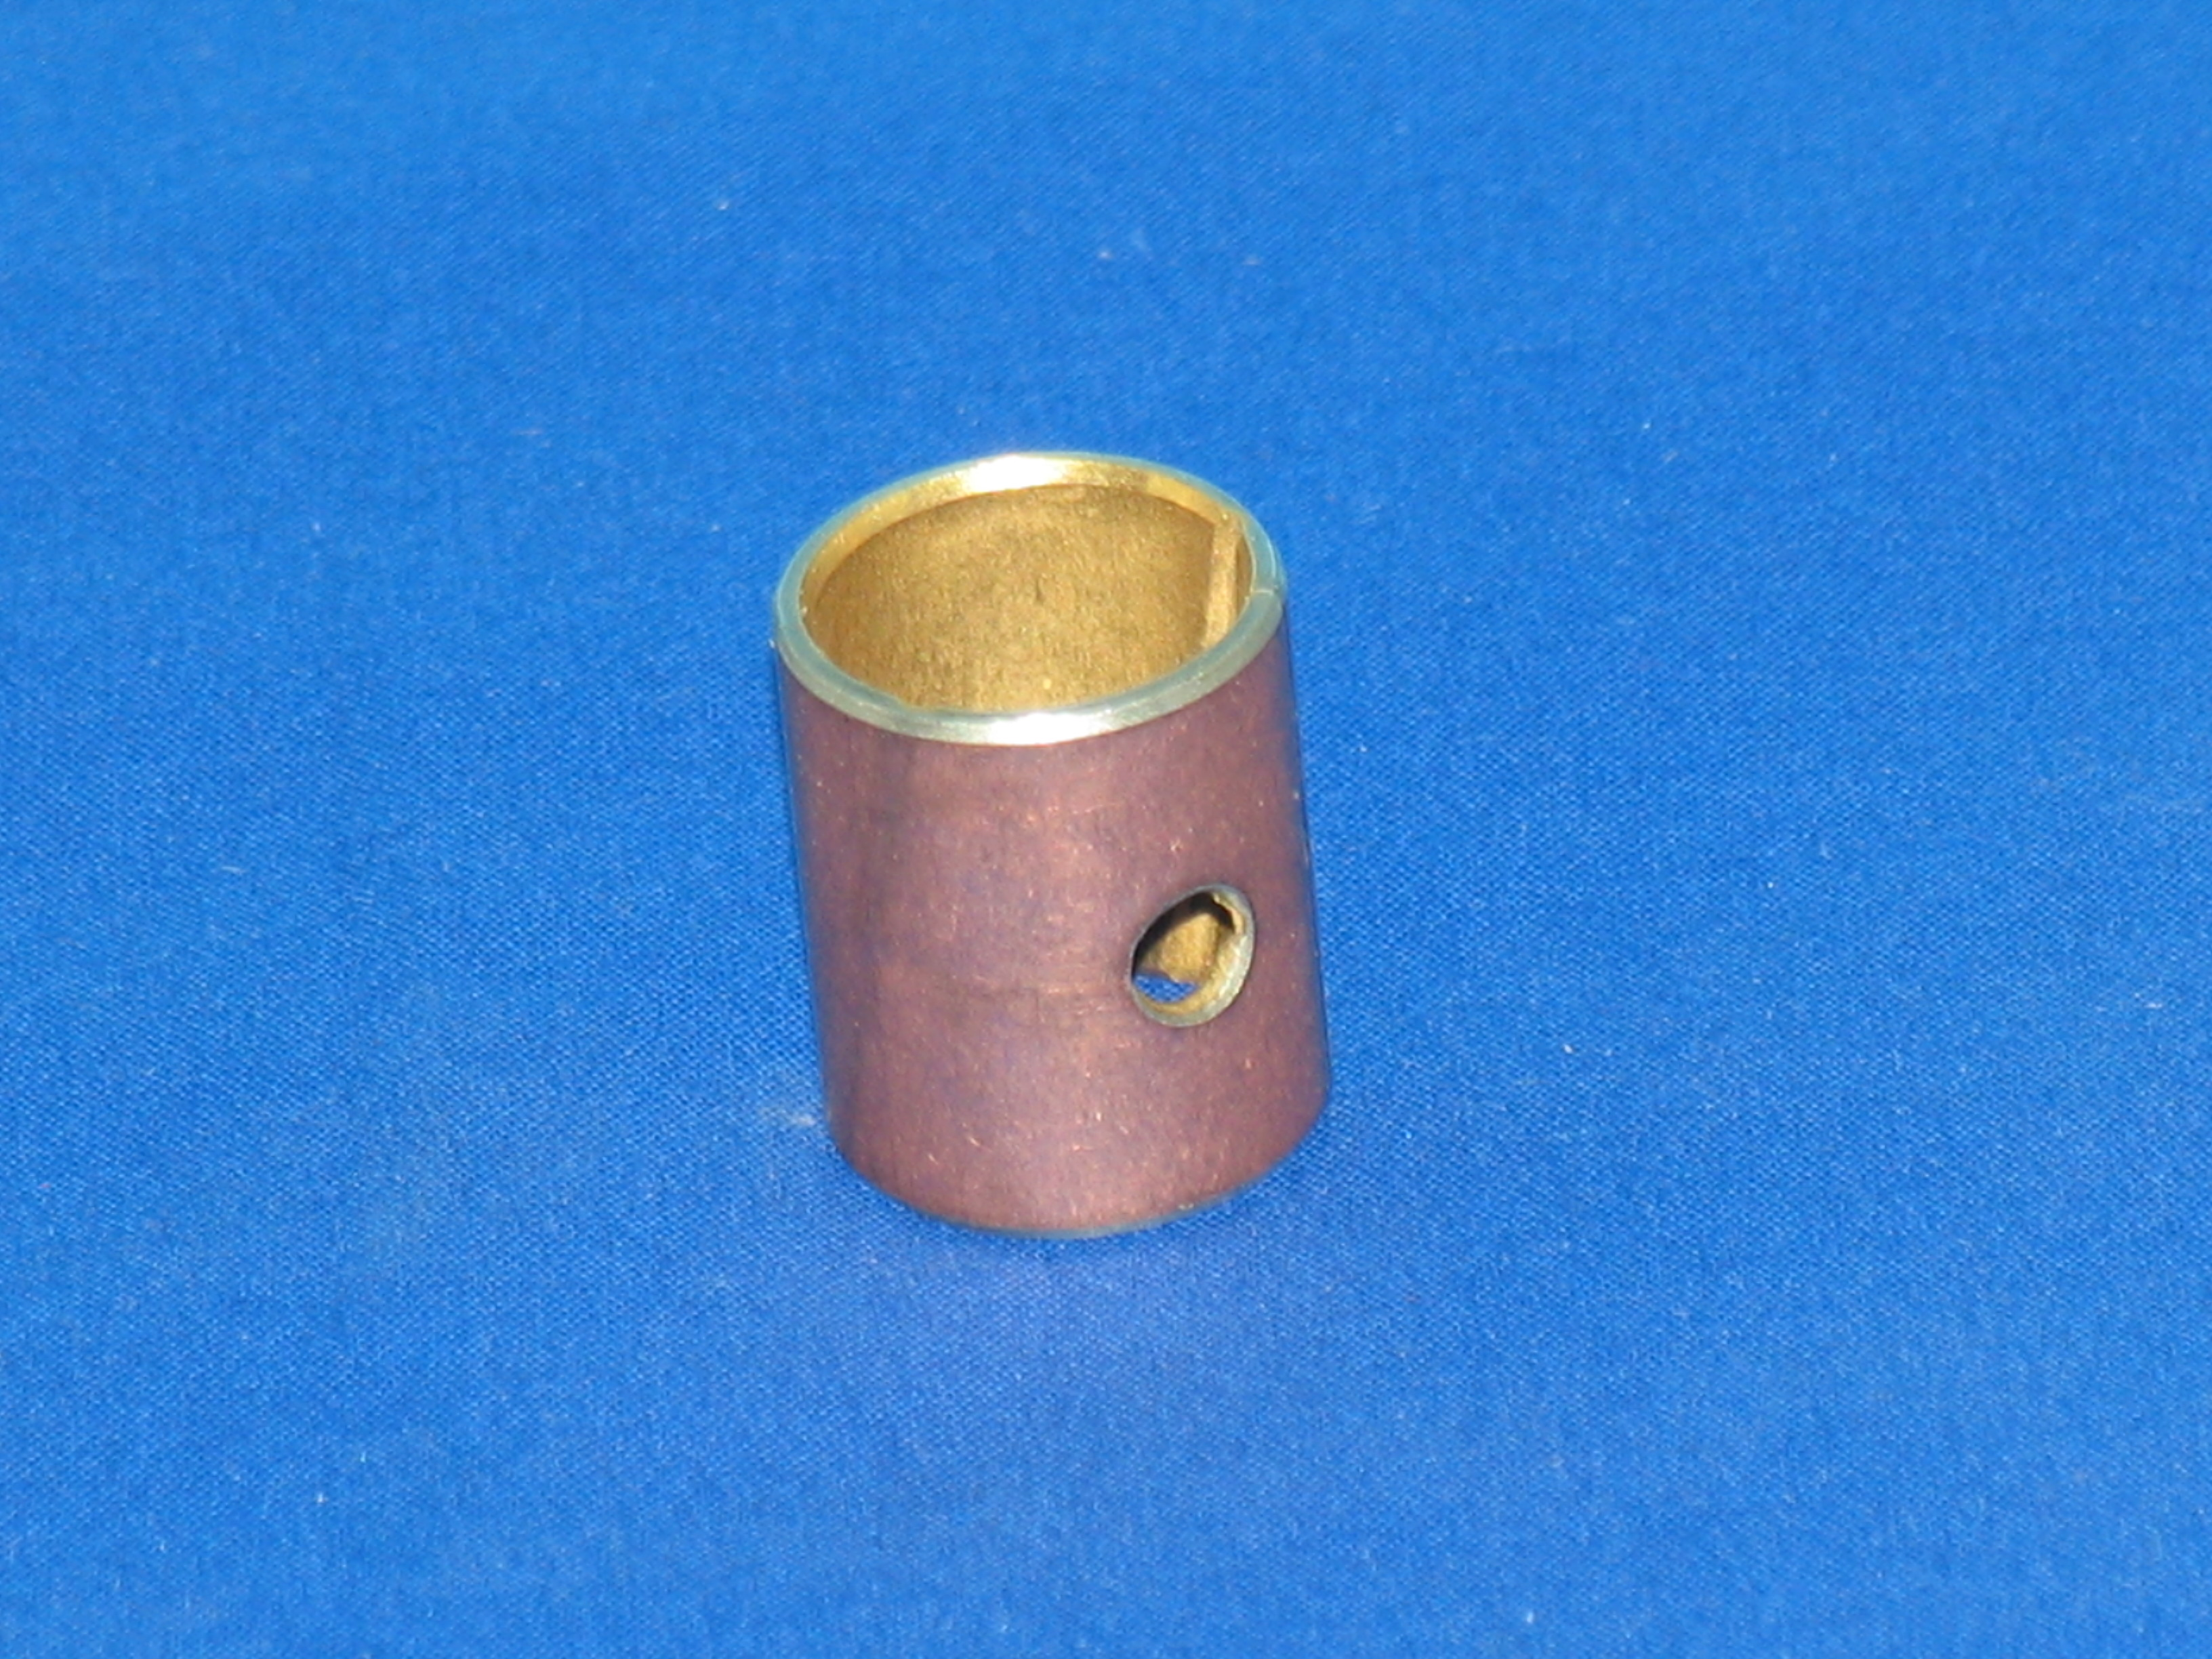 BRG-1850 Piston Pin Bushing; R/N 5F201031